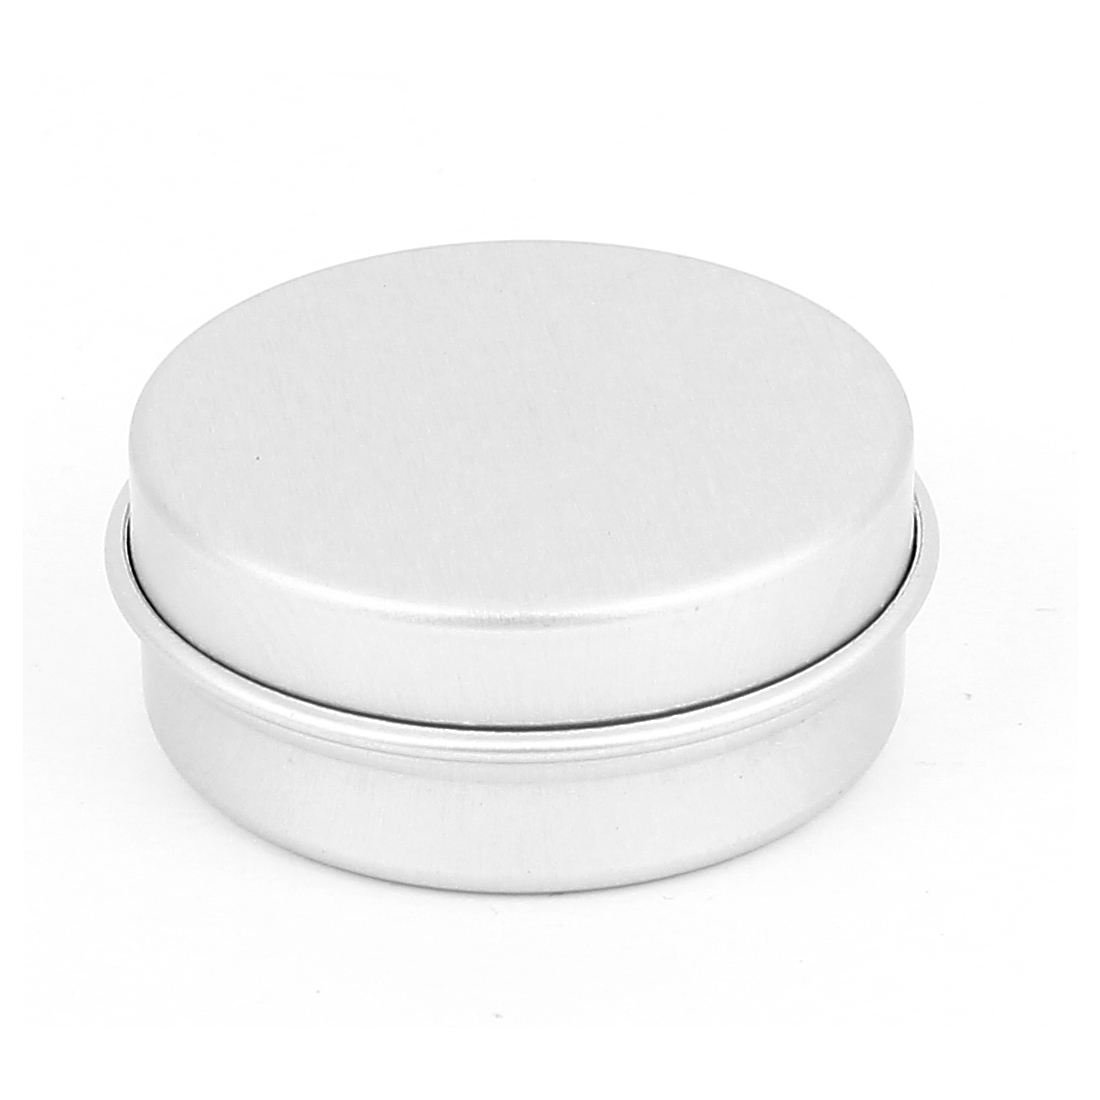 Silver Tone Aluminum Cosmetic Empty Jar Pot Lip Gloss Balm Eyeshadow Case Container Holder 10g